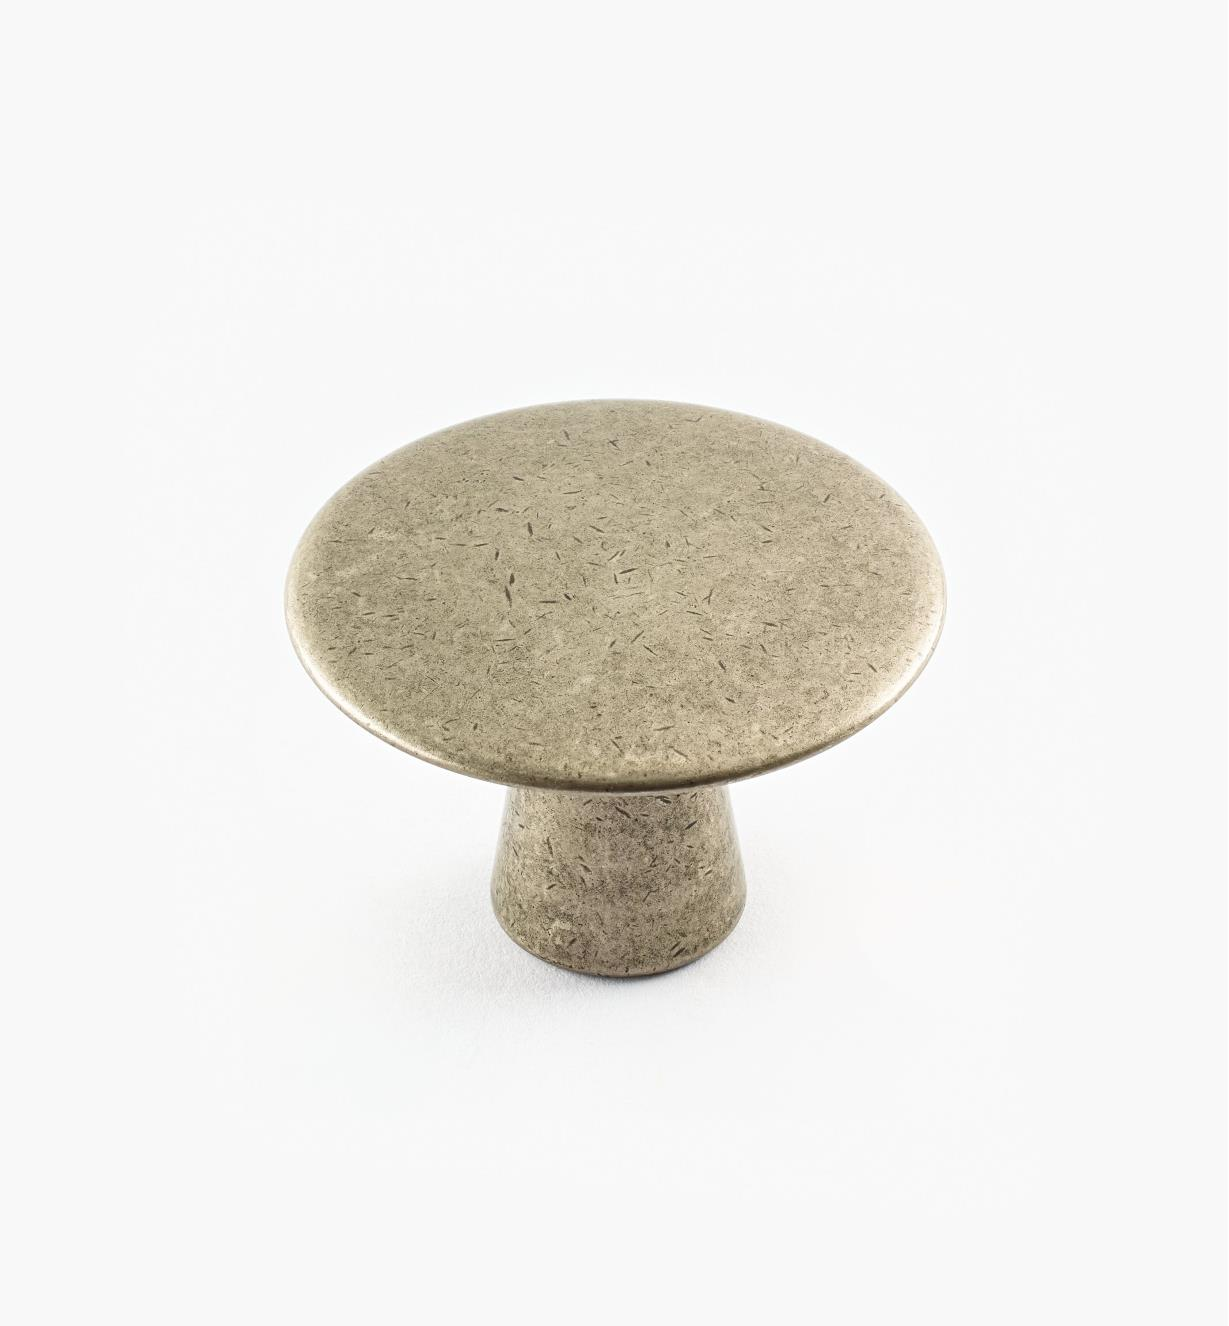 02A1310 - 40mm x 27mm Antique Nickel Plain Knob